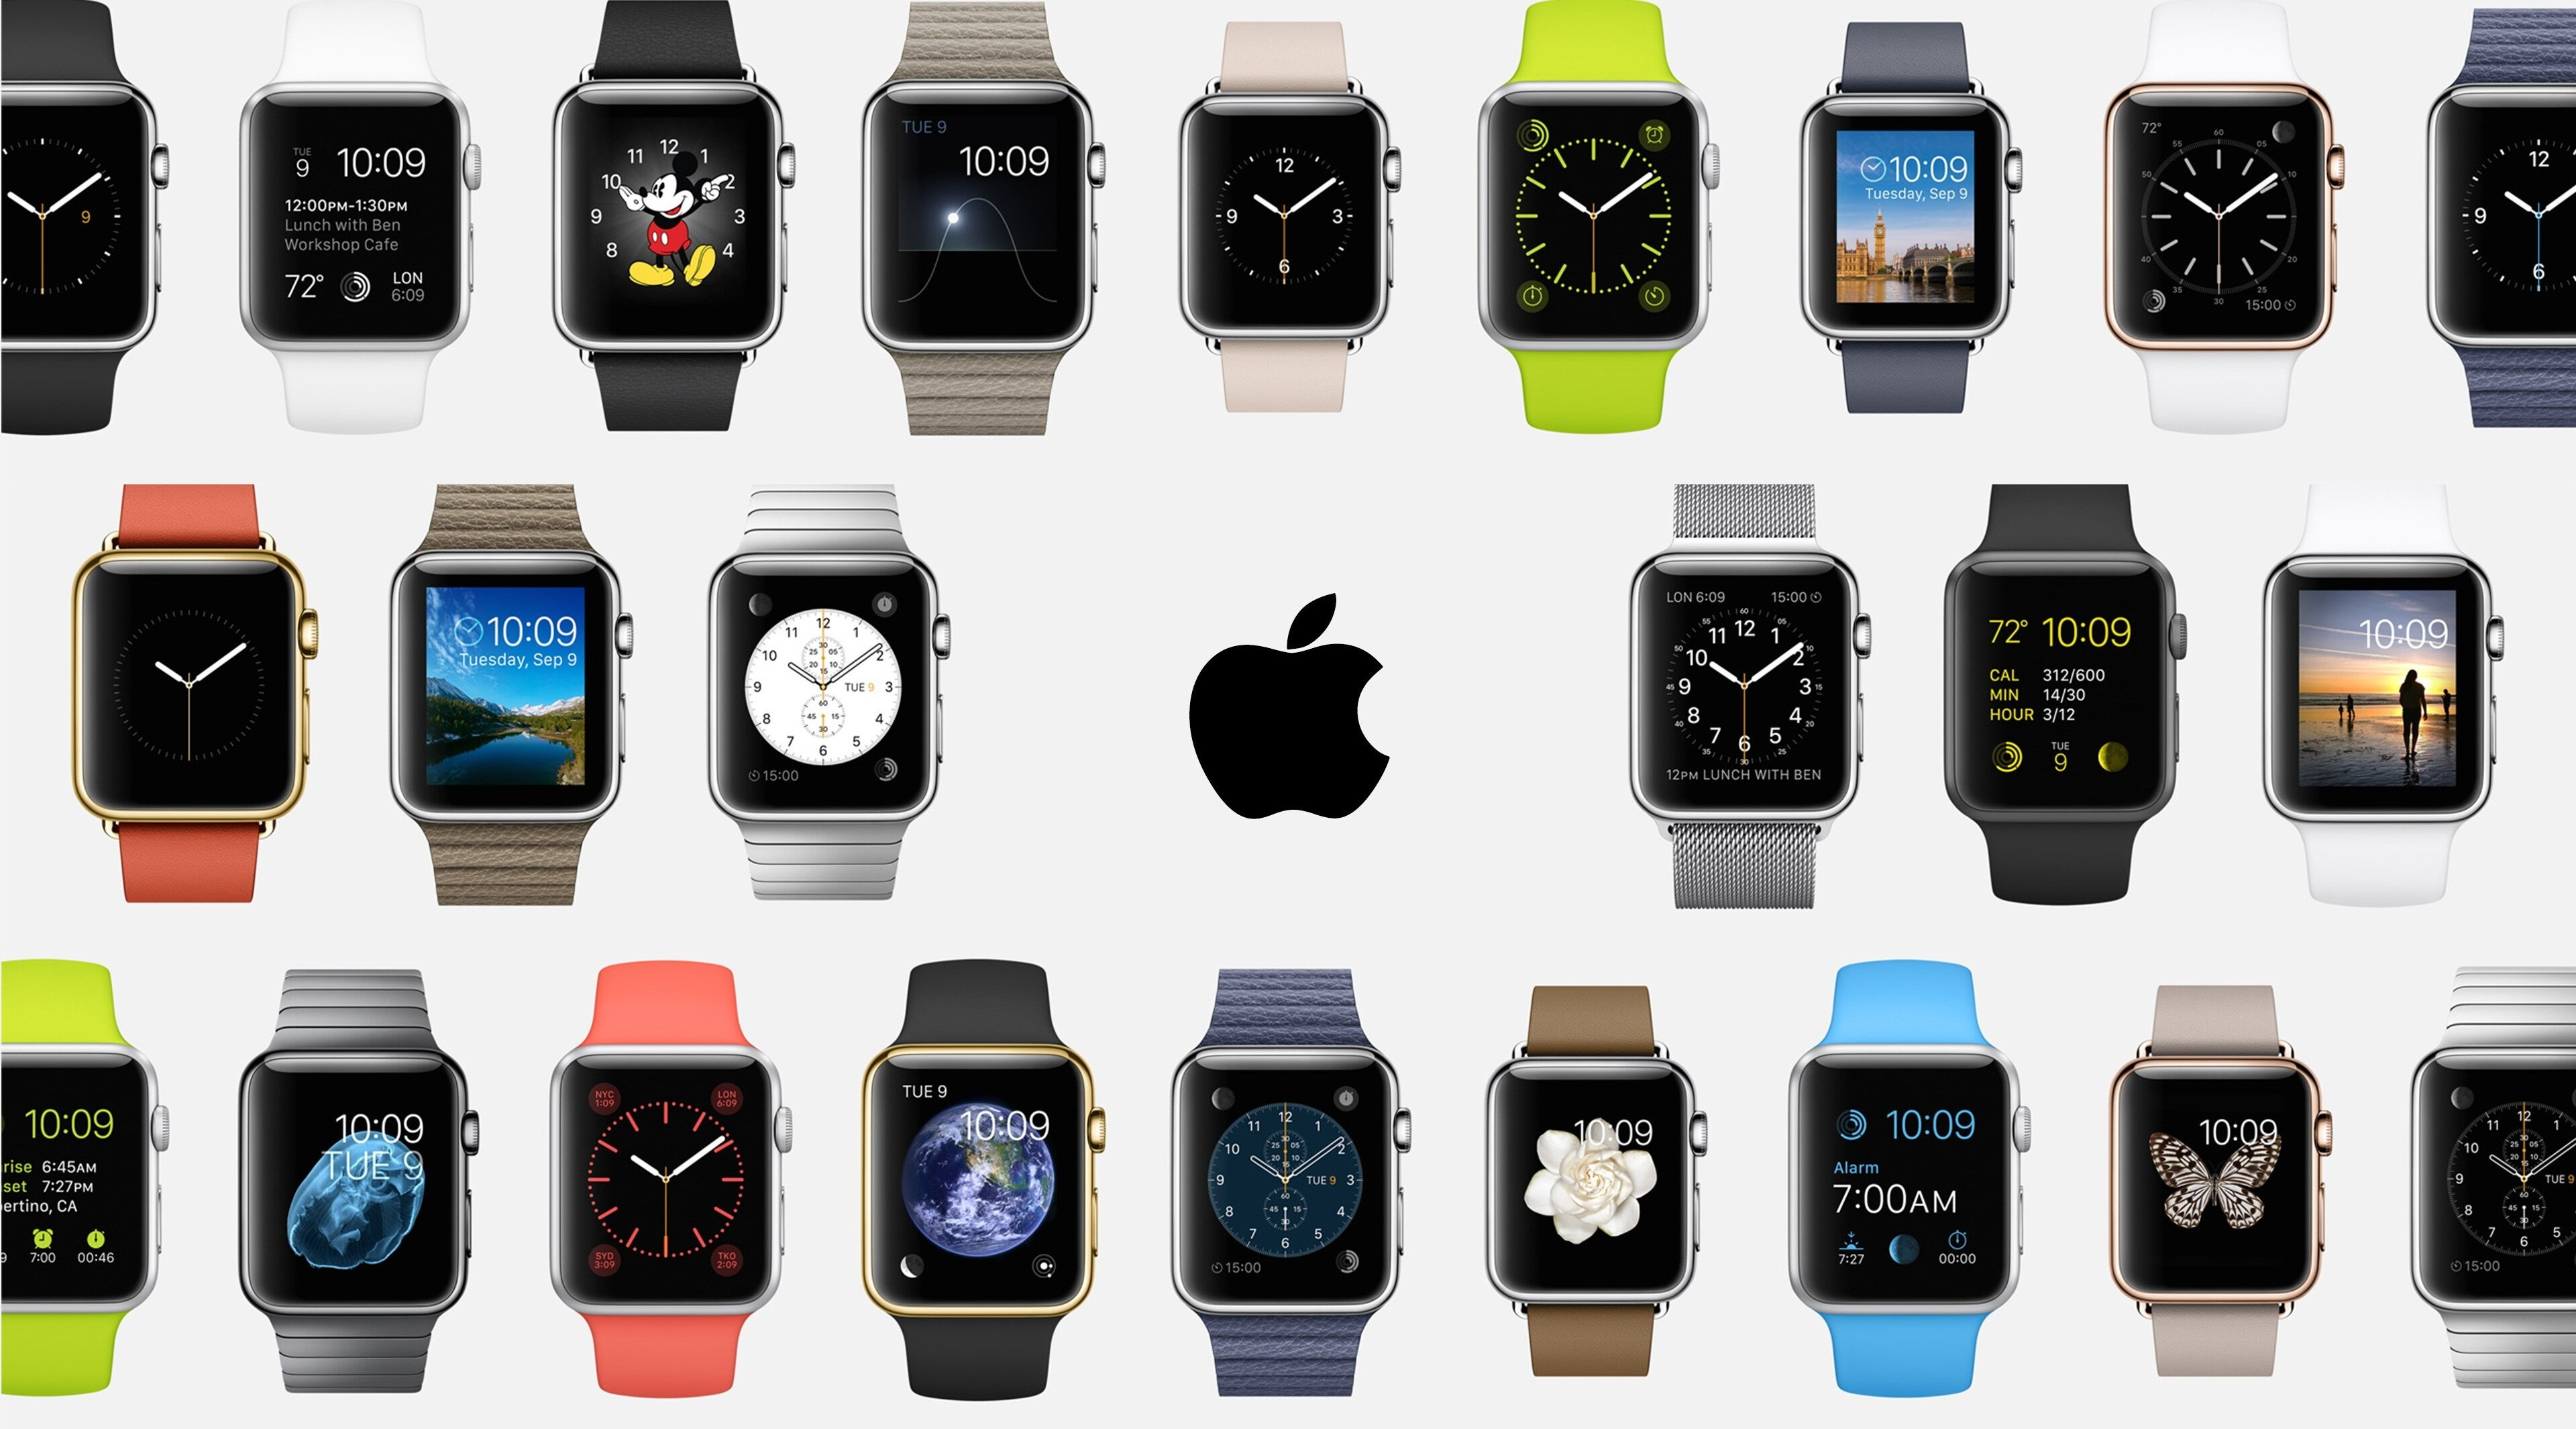 2638074 3840x2130 apple watch 4k free download wallpapers for pc hd